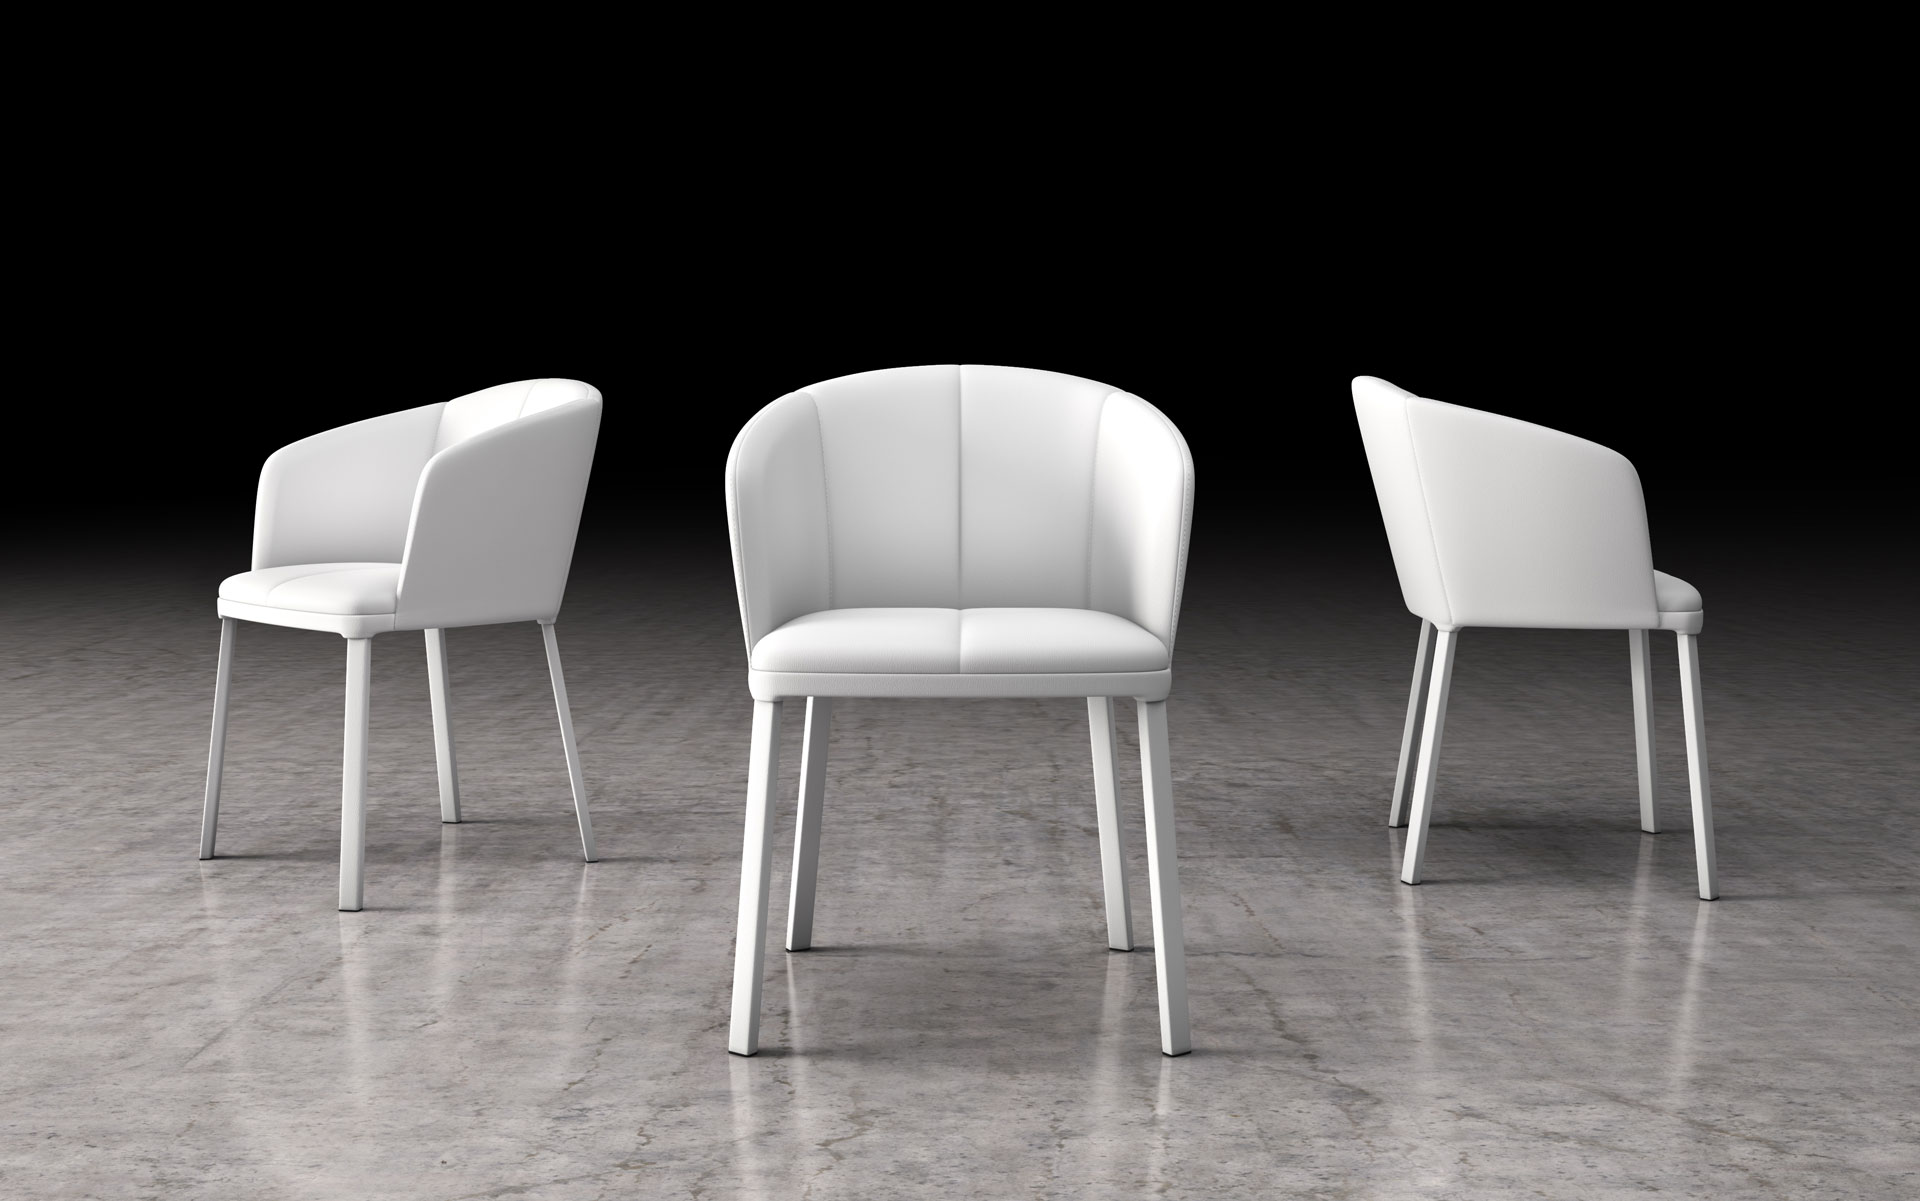 Pleasant Como White Eco Leather Dining Chair Andrewgaddart Wooden Chair Designs For Living Room Andrewgaddartcom